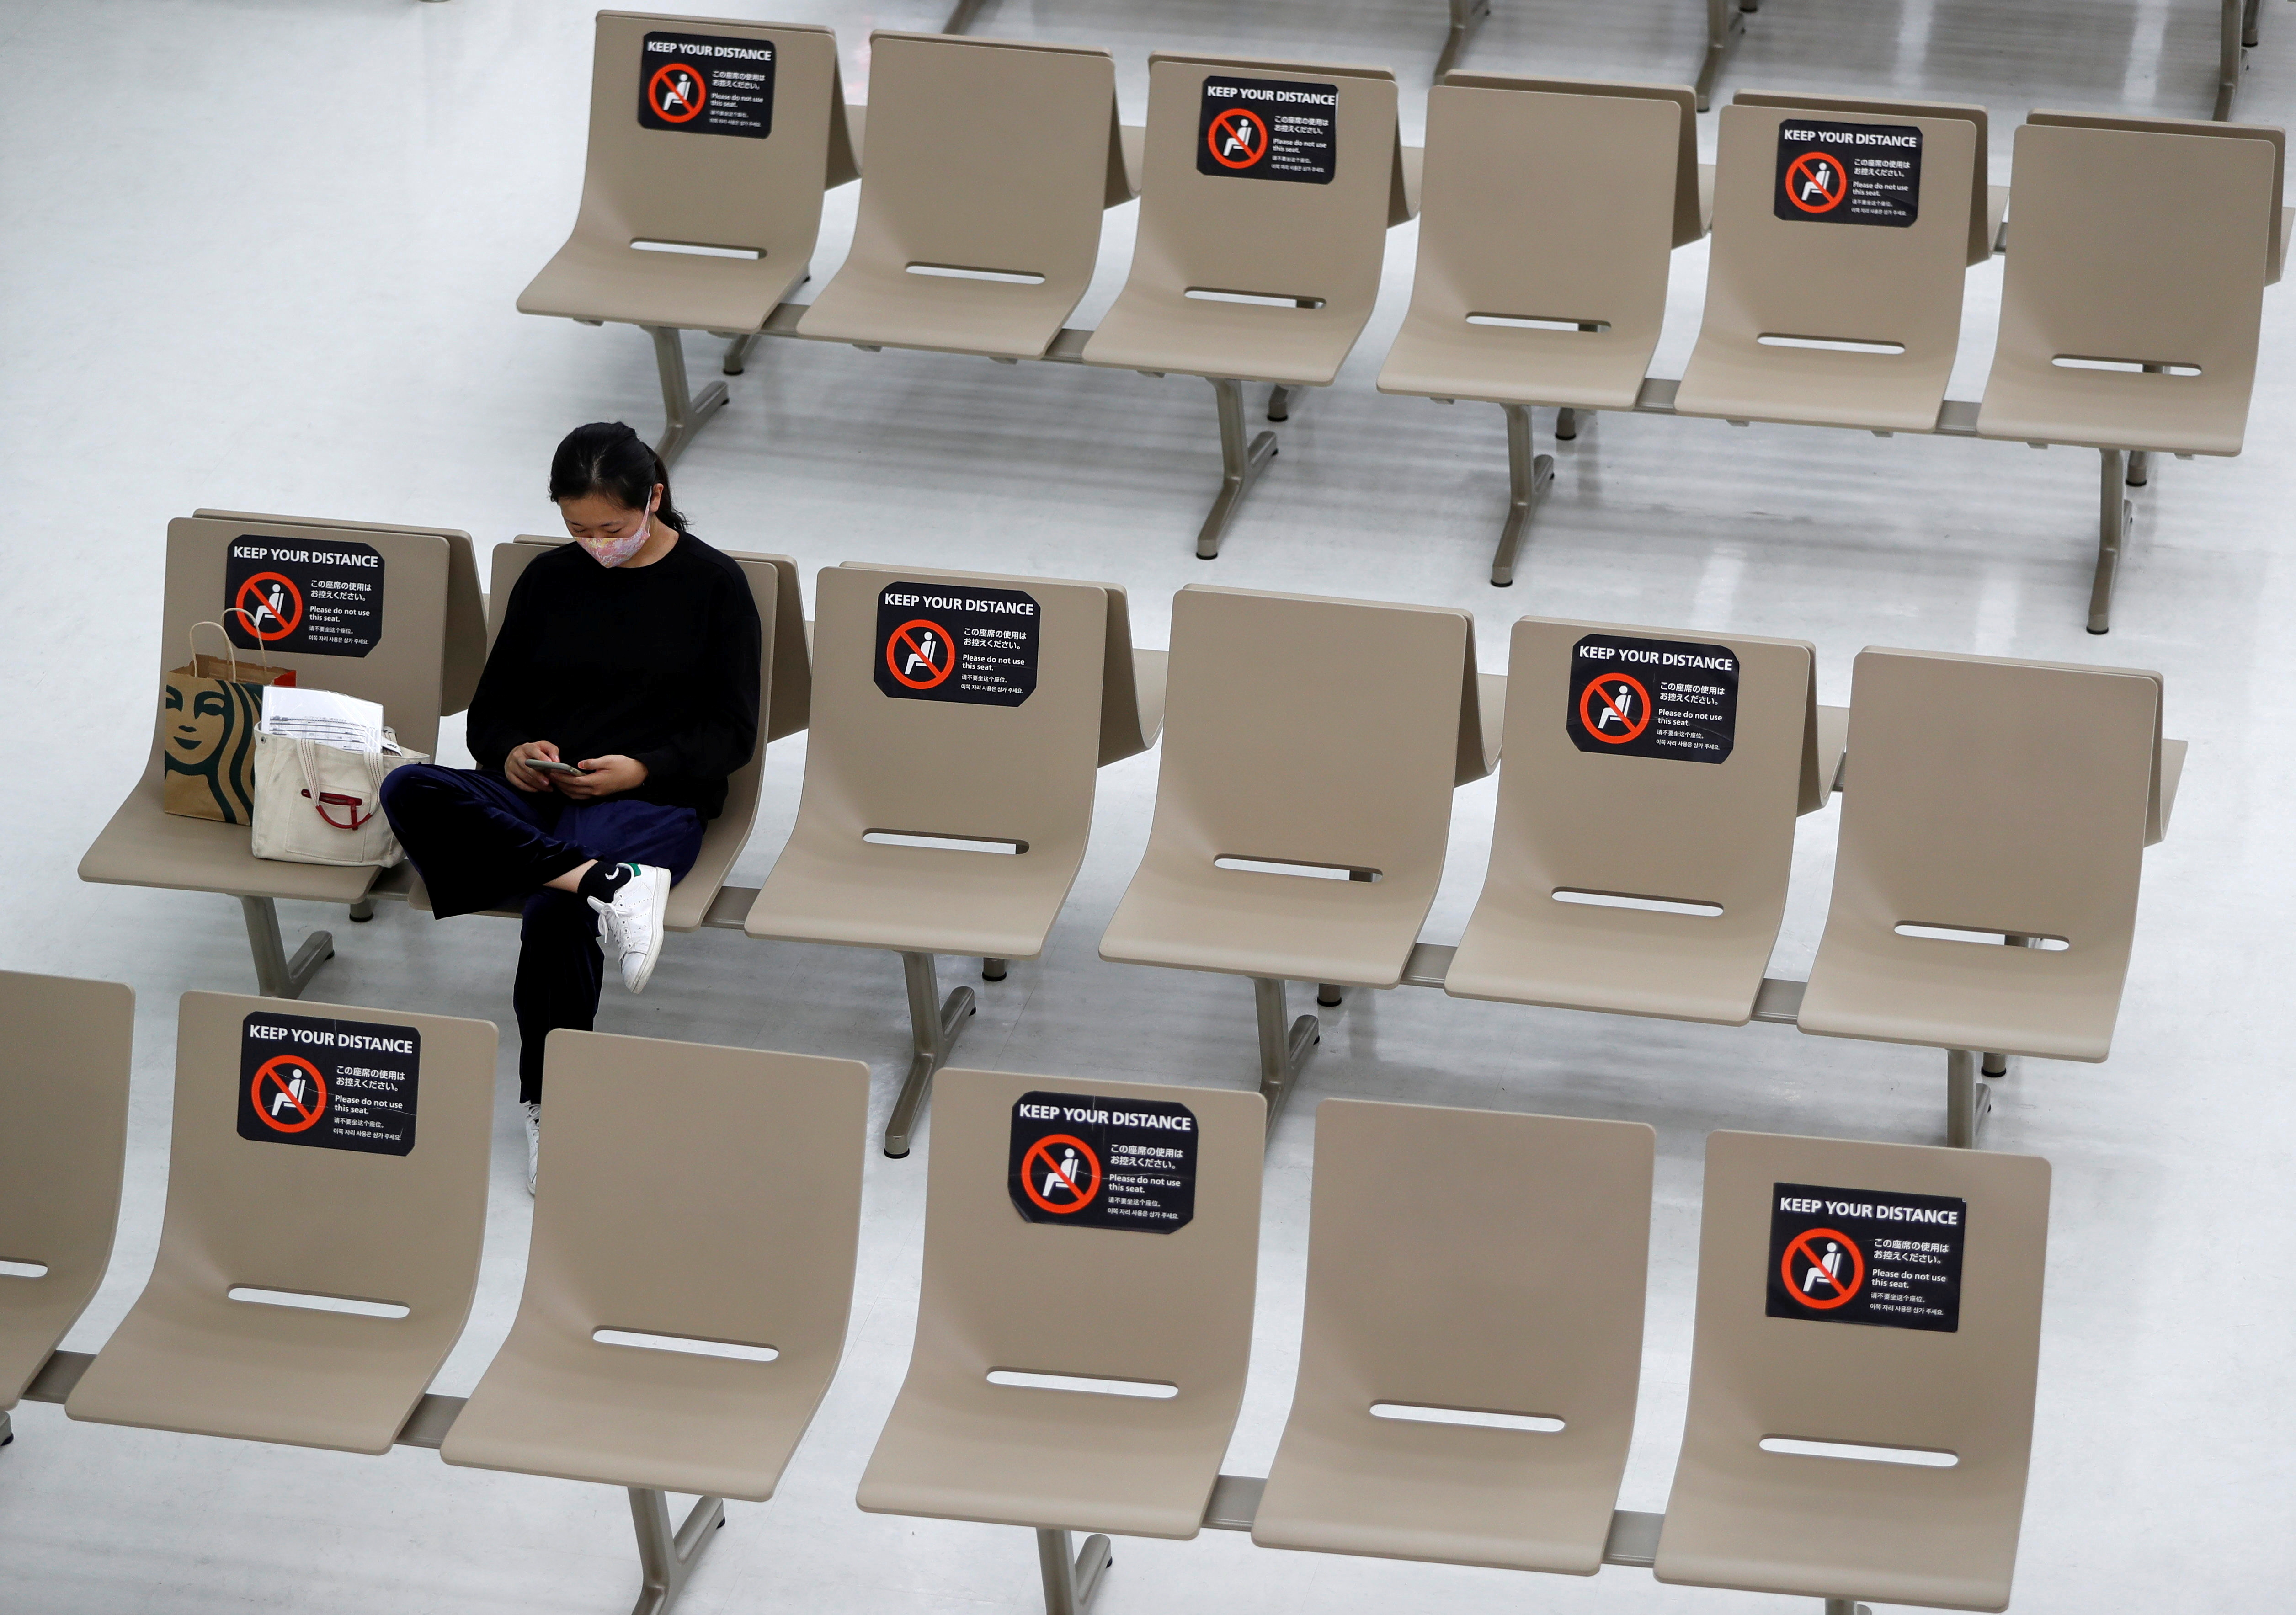 Signs for social distancing are seen on seats at the arrival zone of Narita International Airport, where there are fewer passengers than usual amid the coronavirus disease (COVID-19) outbreak, in Narita, east of Tokyo, Japan November 2, 2020. Photo: Reuters